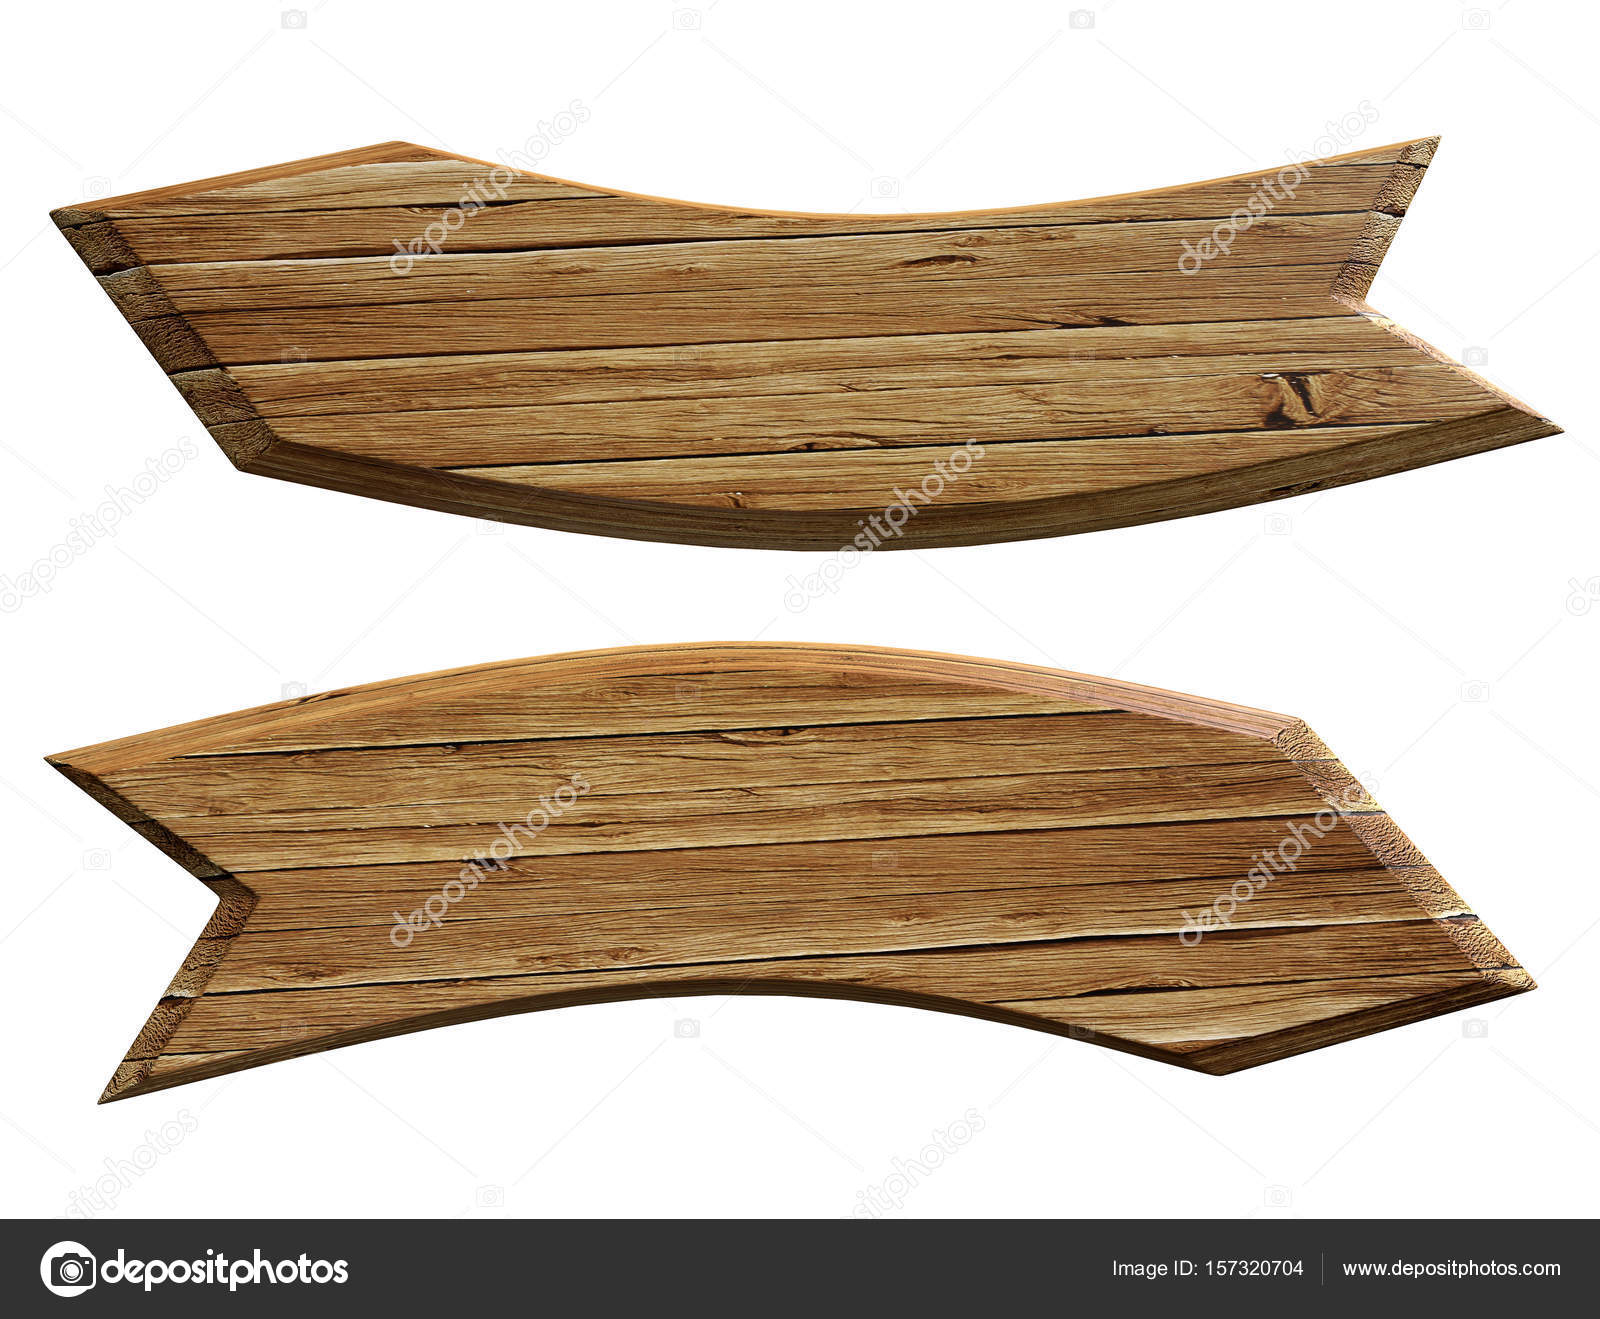 Two Wood Texture Advertising Sign Boards Shaped Like Curved Arrows